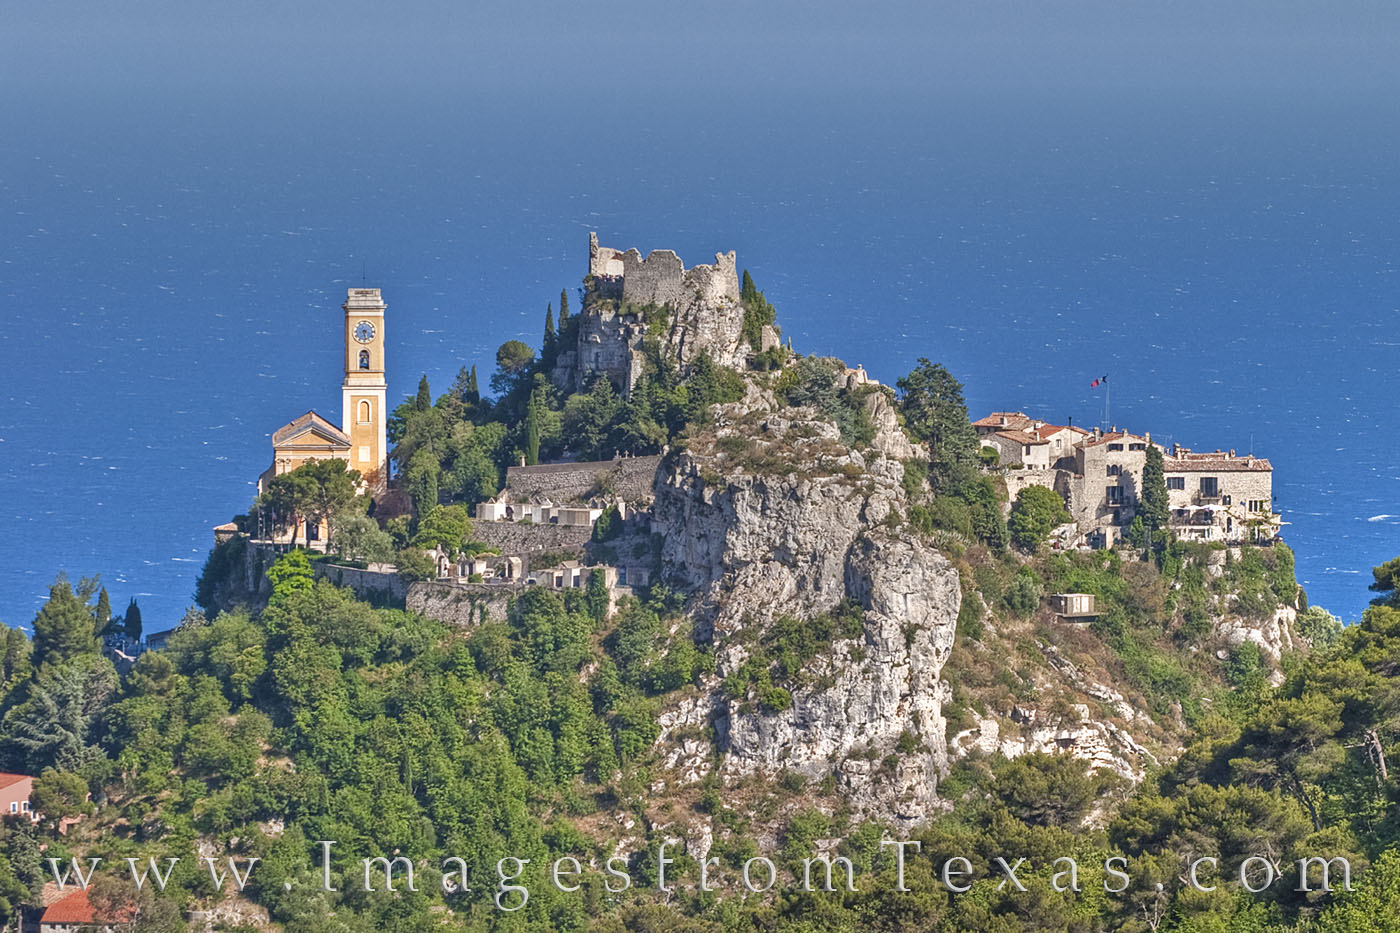 eze, france, castle, french riveria, village, hilltop town, turrett, nice, Mediterranean, Sea, ocean, blue, photo